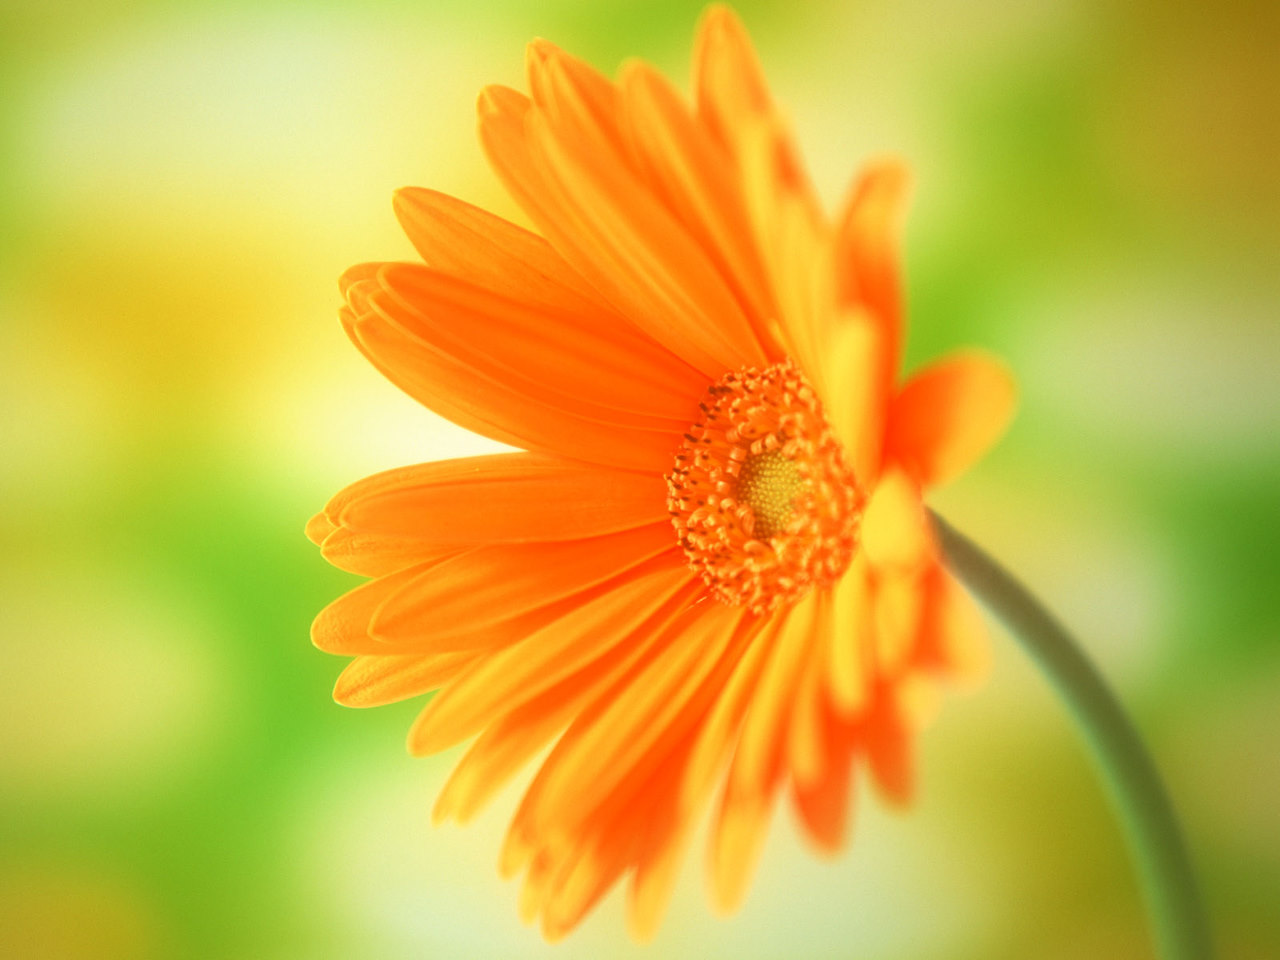 Flowers Wallpapers Animated Wallpaper Latest Nature Desktop